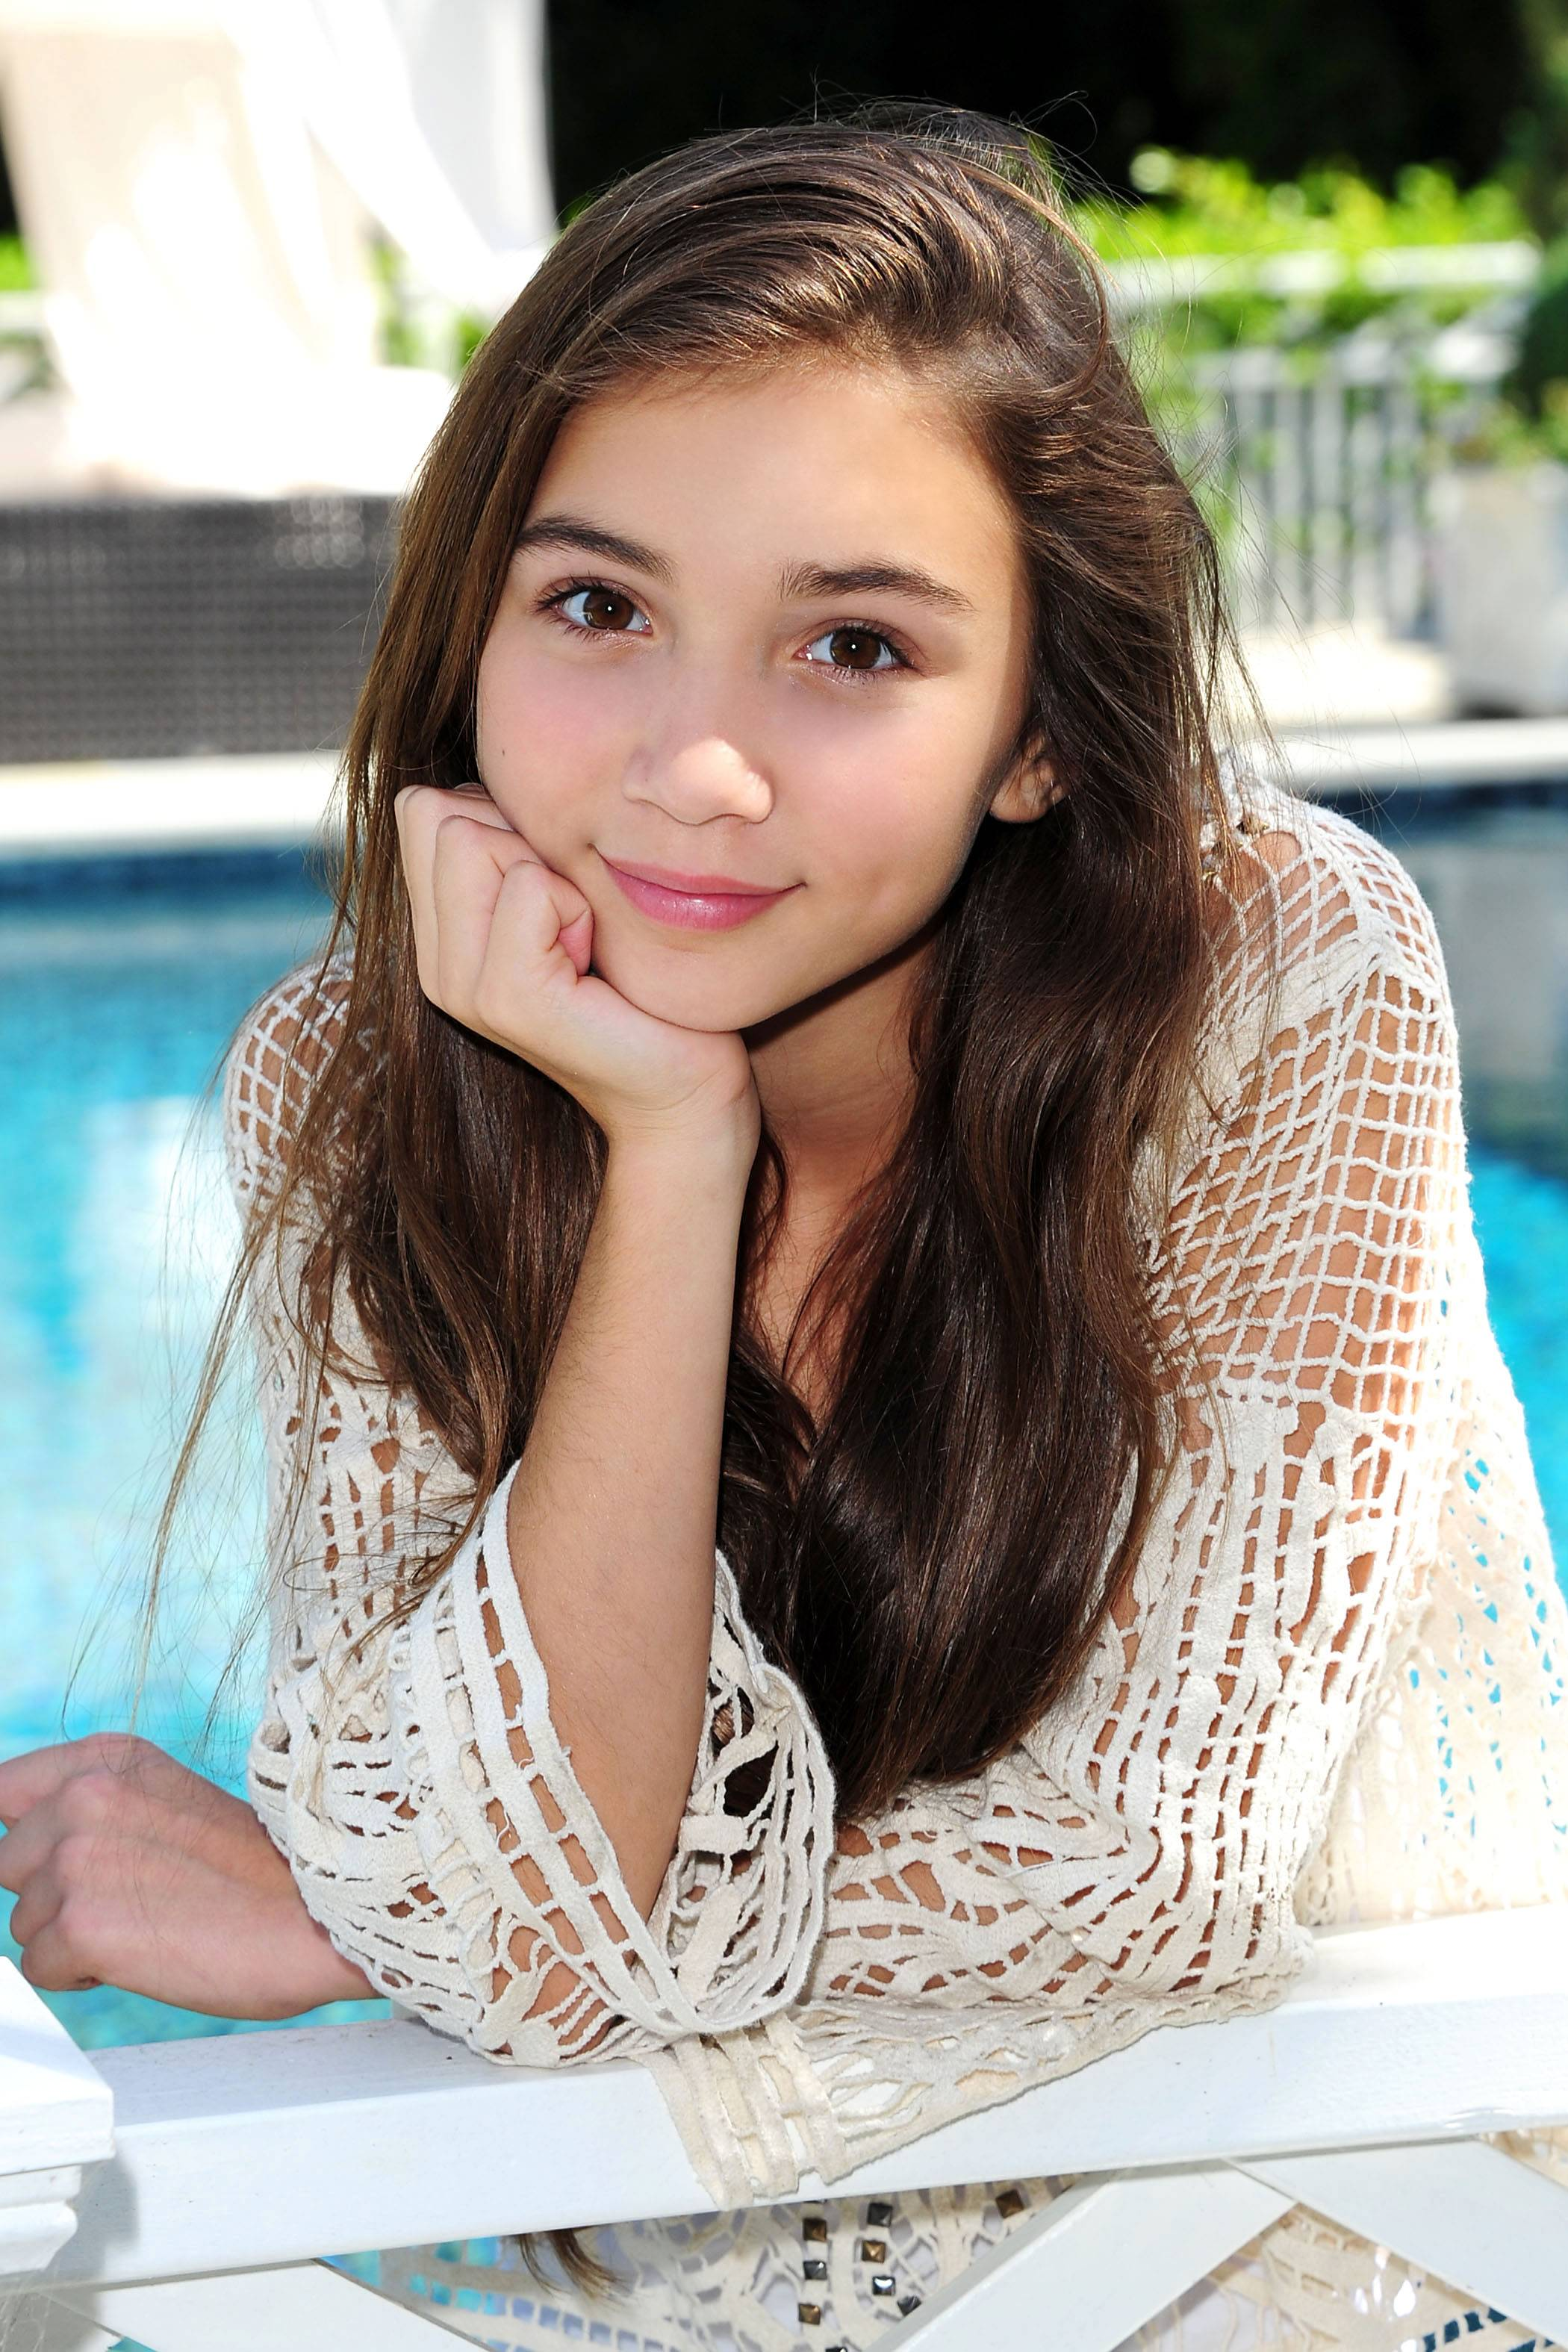 Cute Wallpaper Hd Girl Meets World Pictures Of Rowan Blanchard Picture 15583 Pictures Of